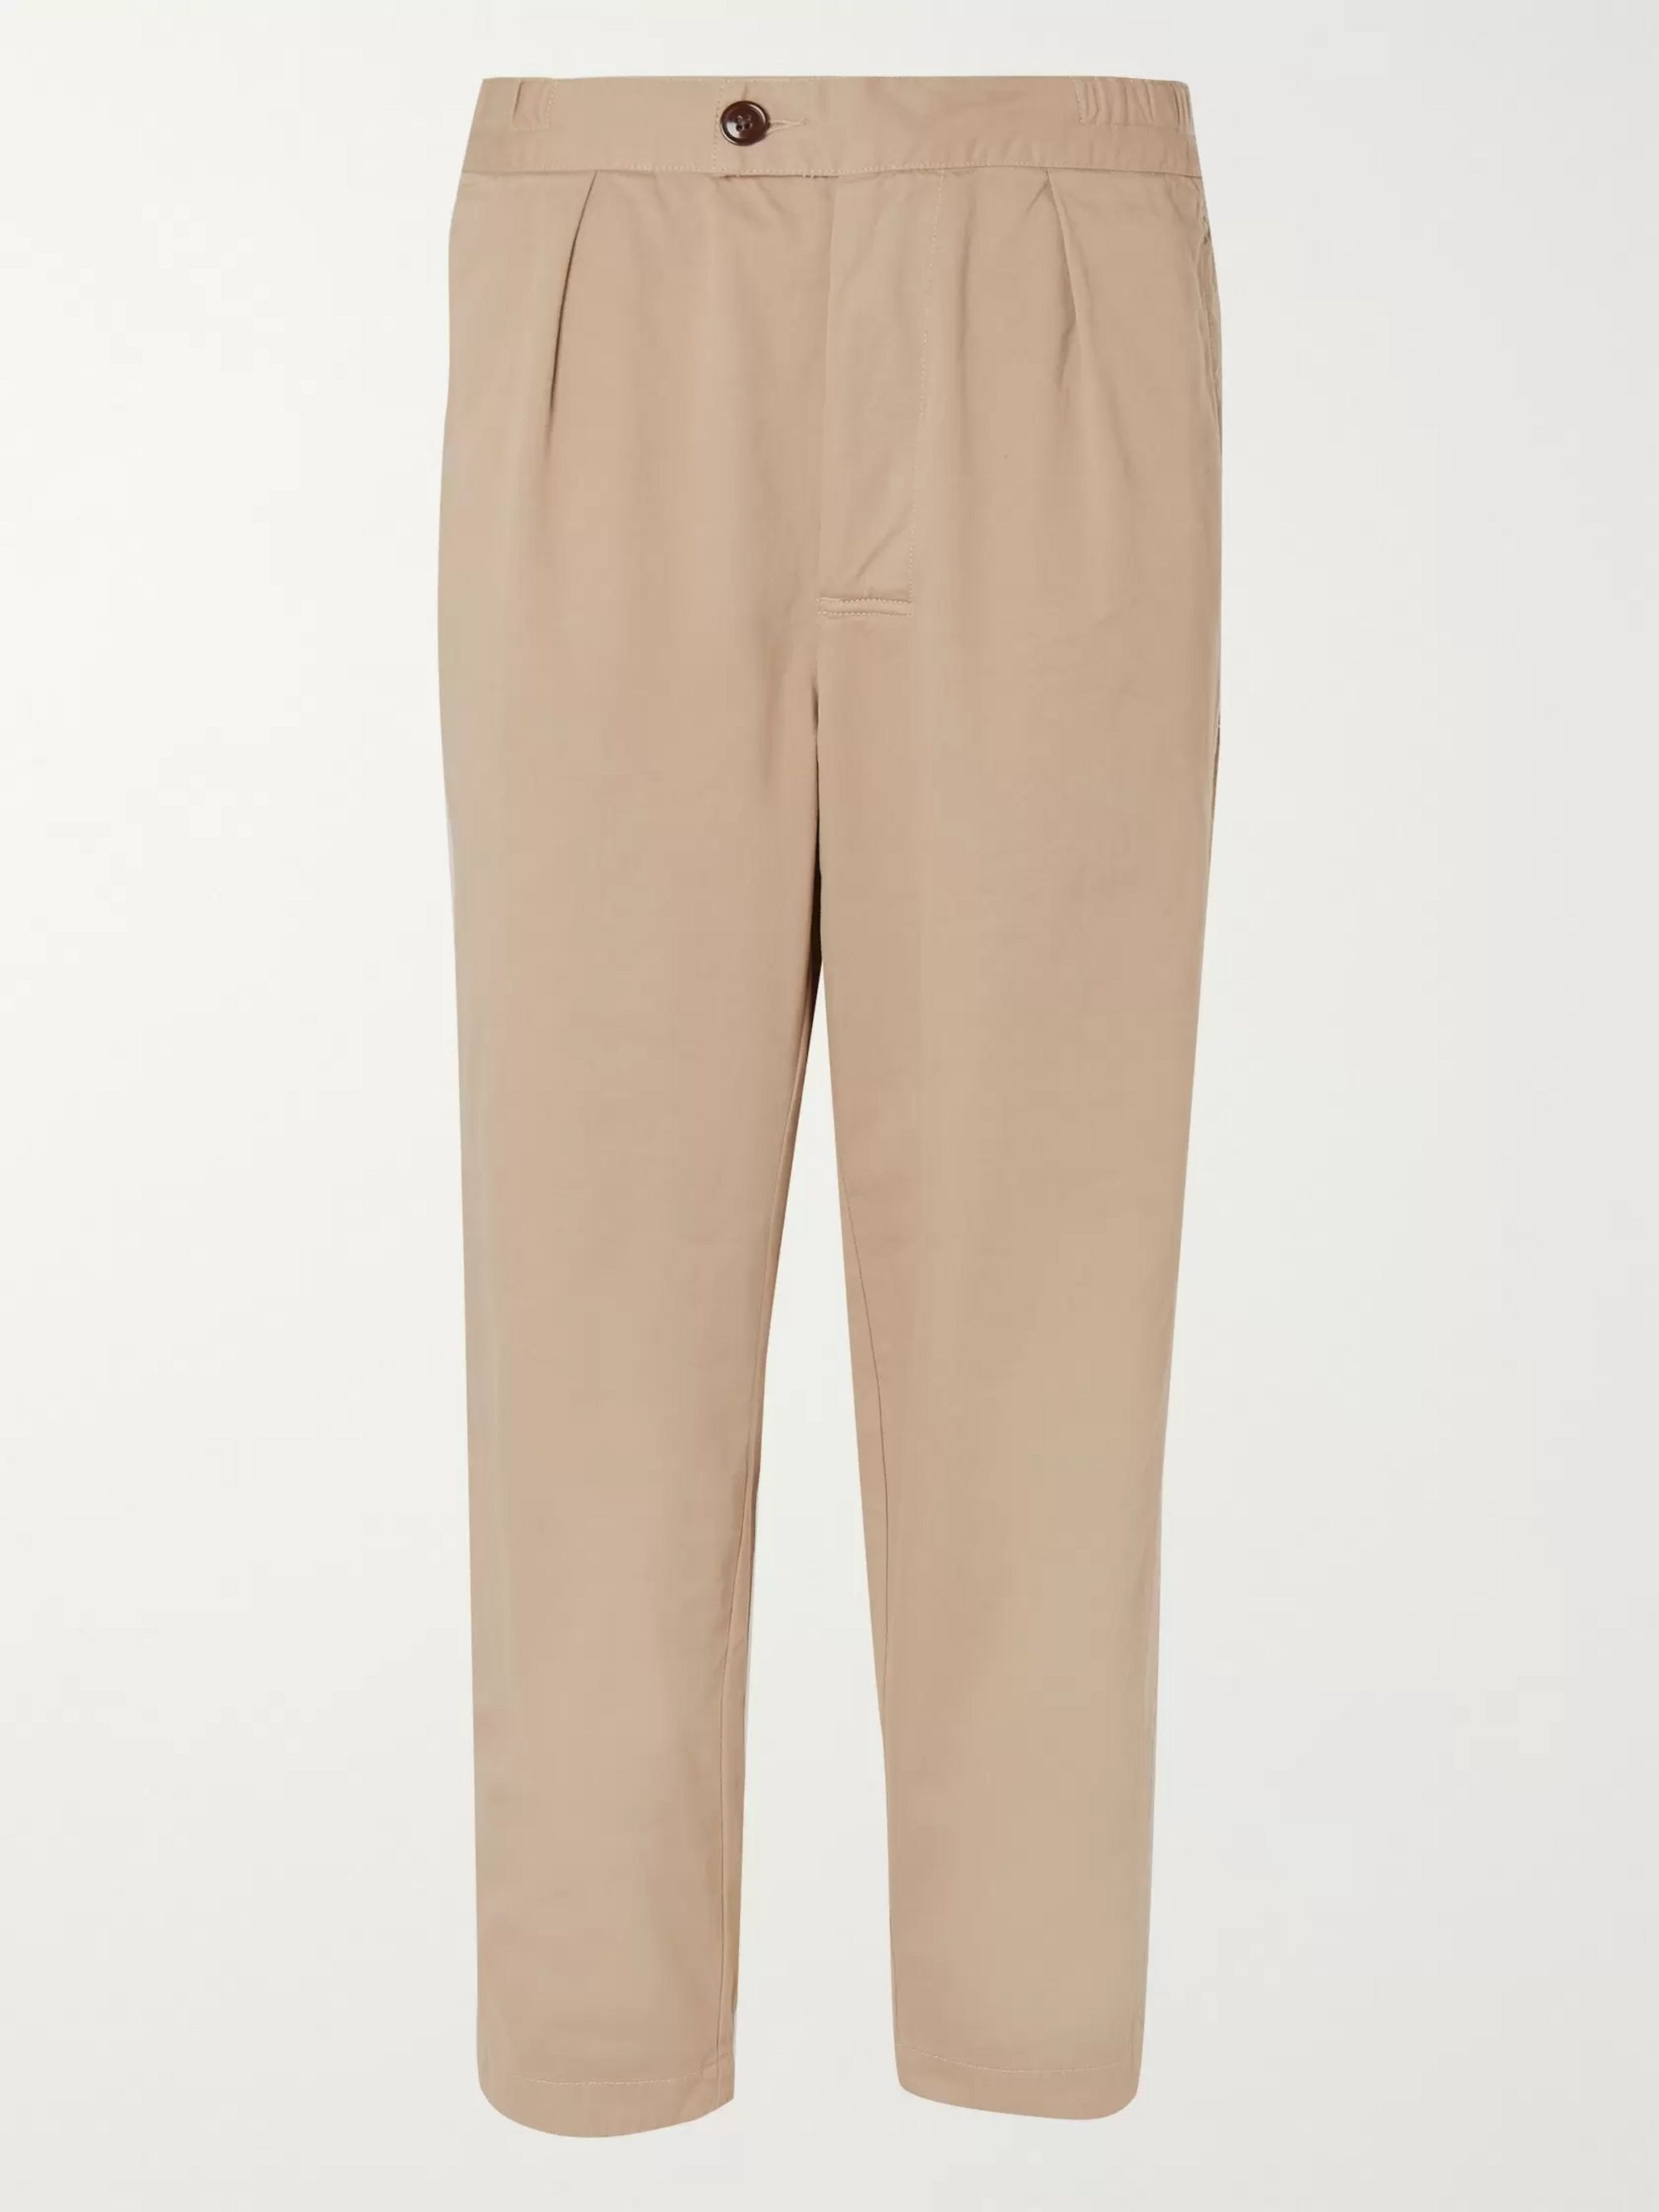 BARBOUR WHITE LABEL White Label Tapered Cotton-Twill Drawstring Trousers